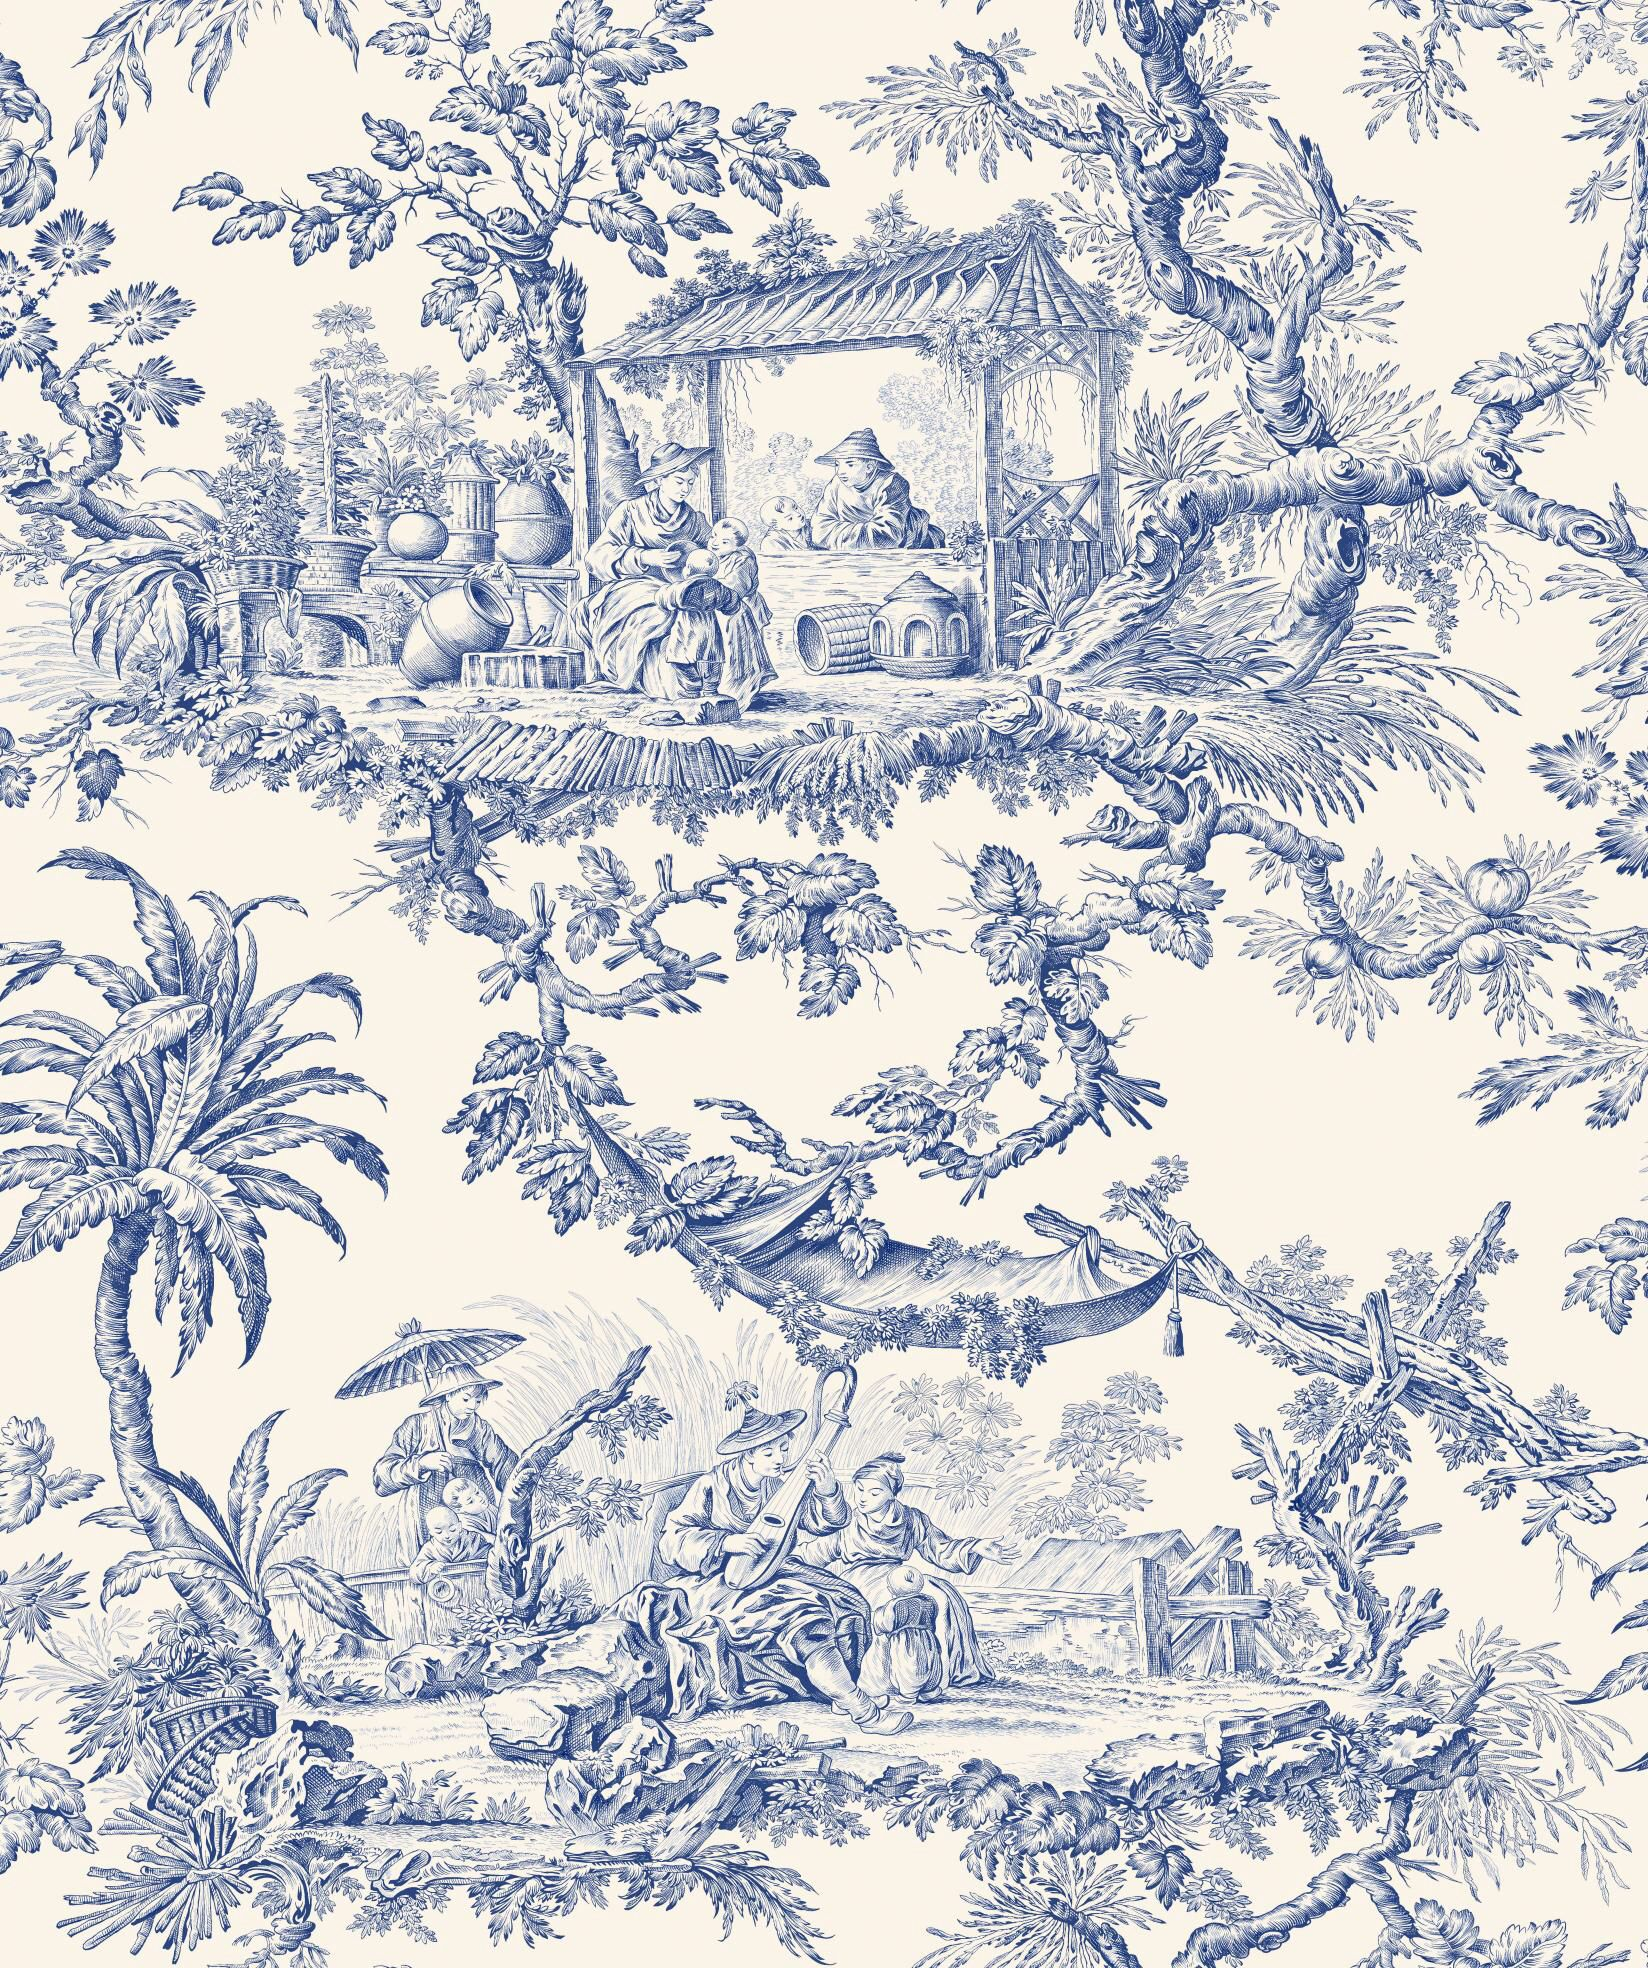 toile de jouy repeat pinterest toile de jouy toiles et bleu. Black Bedroom Furniture Sets. Home Design Ideas